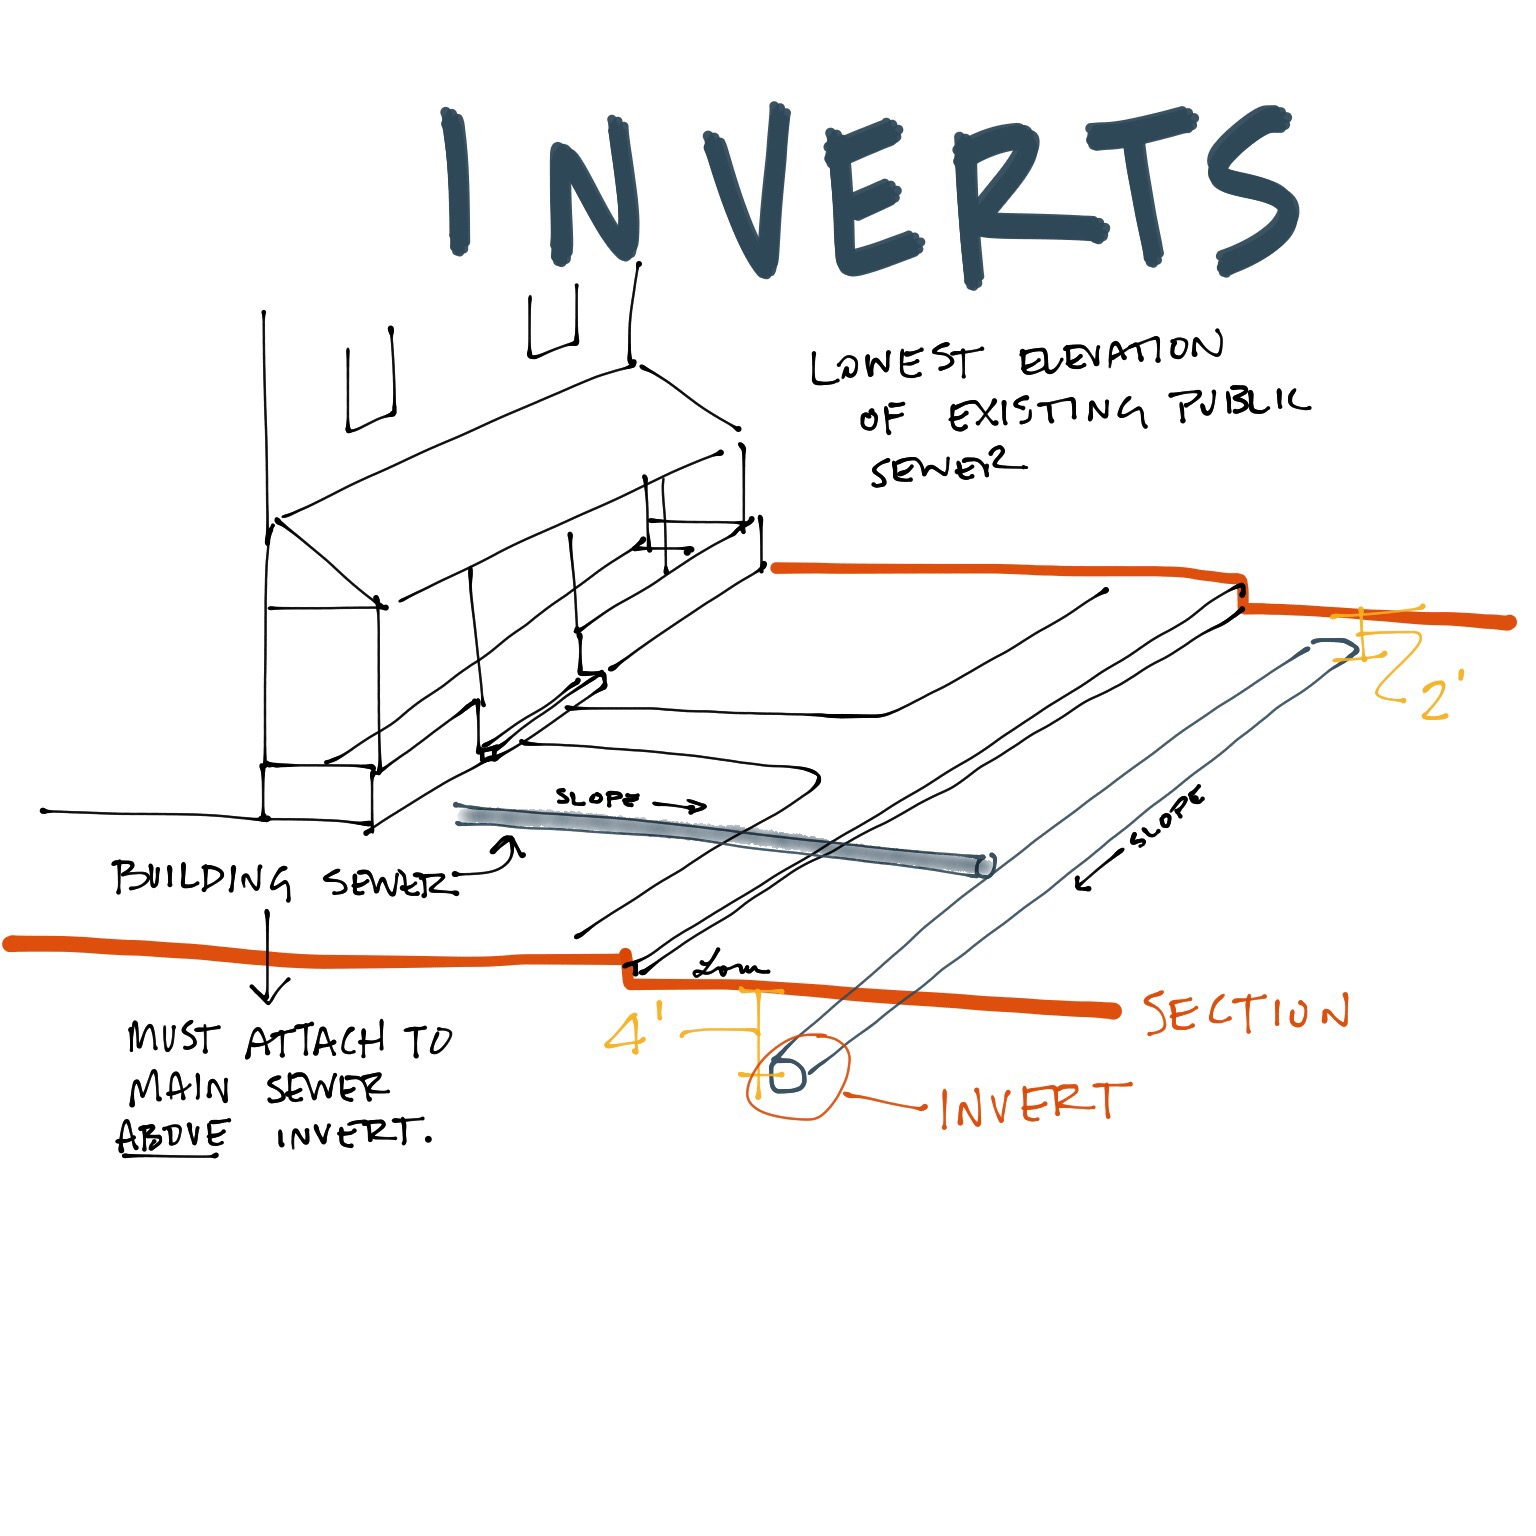 An Invert Is The Lowest Elevation At The Public Sewer